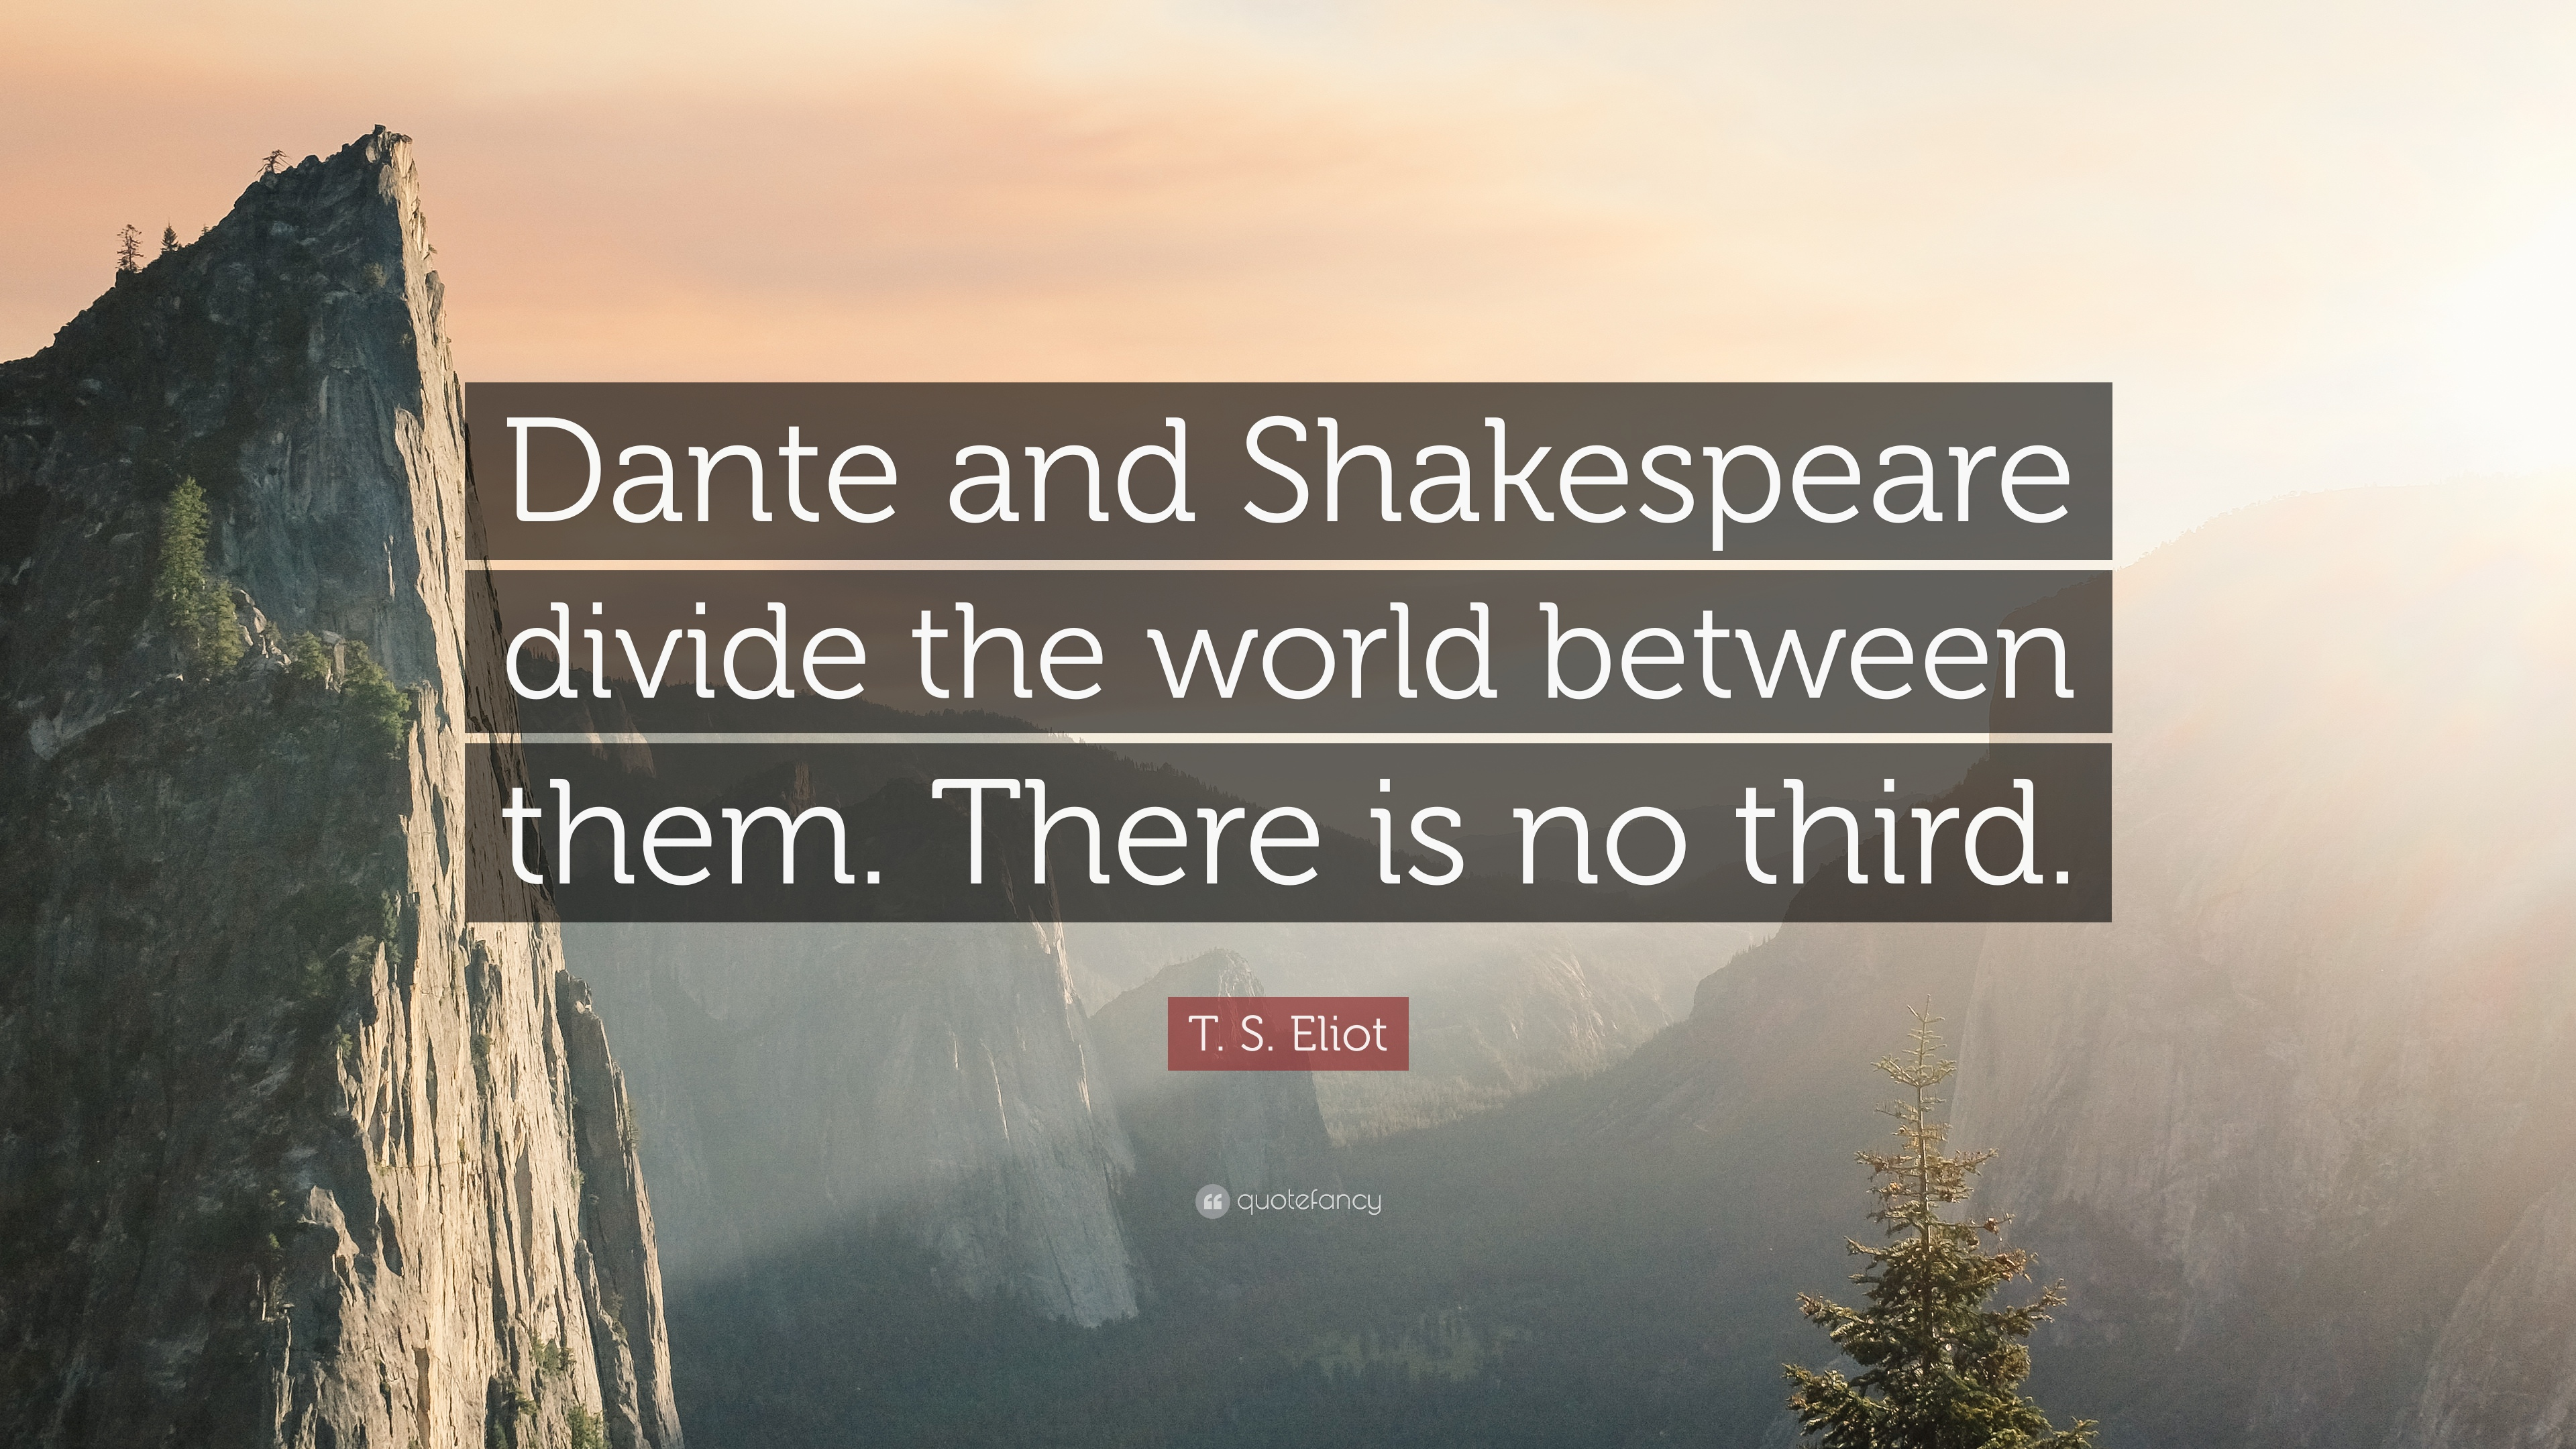 ts eliot essay on dante The great essay on dante appeared two years after eliot was confirmed in the church of england (1927) in that year he also became a british subject.